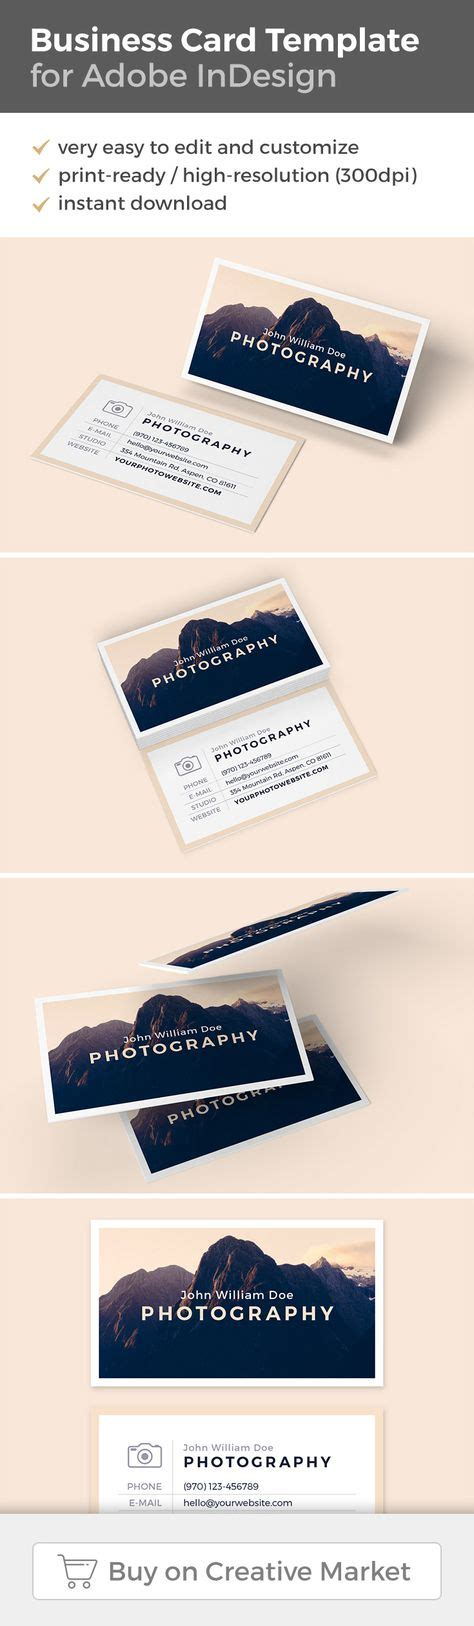 card templates for sale photography business card for sale choice image card